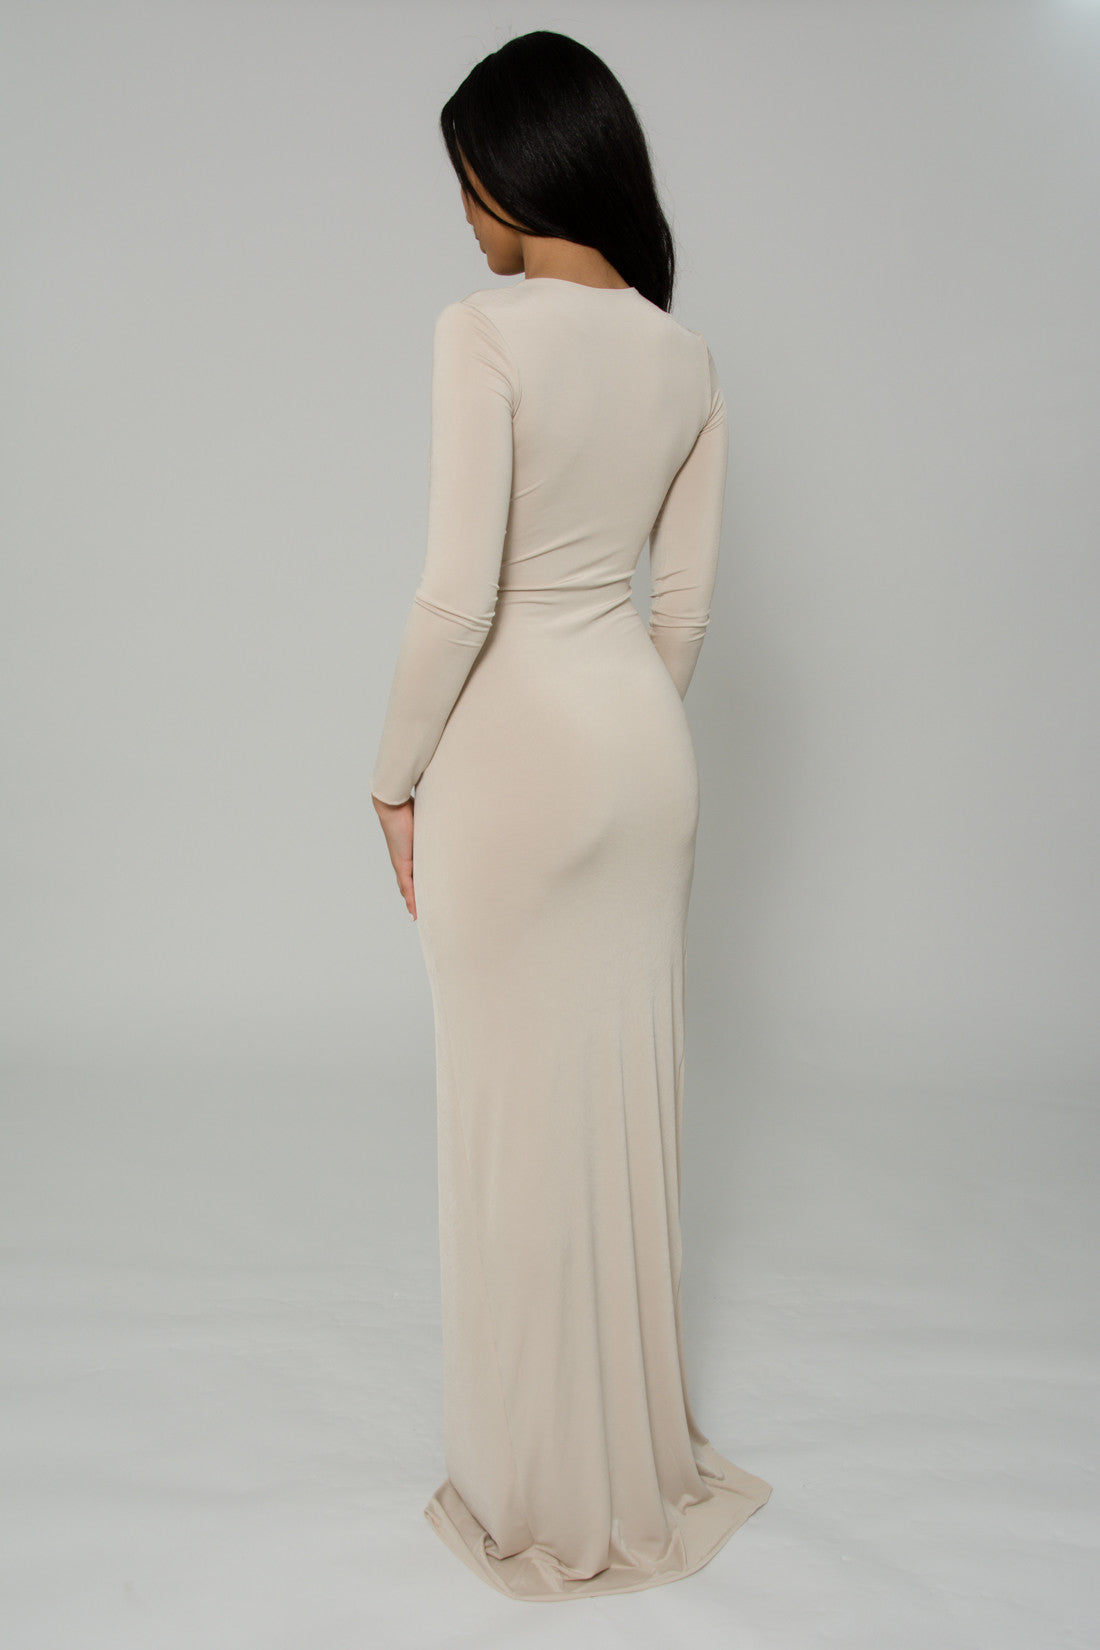 THE 'DENVER' DRESS